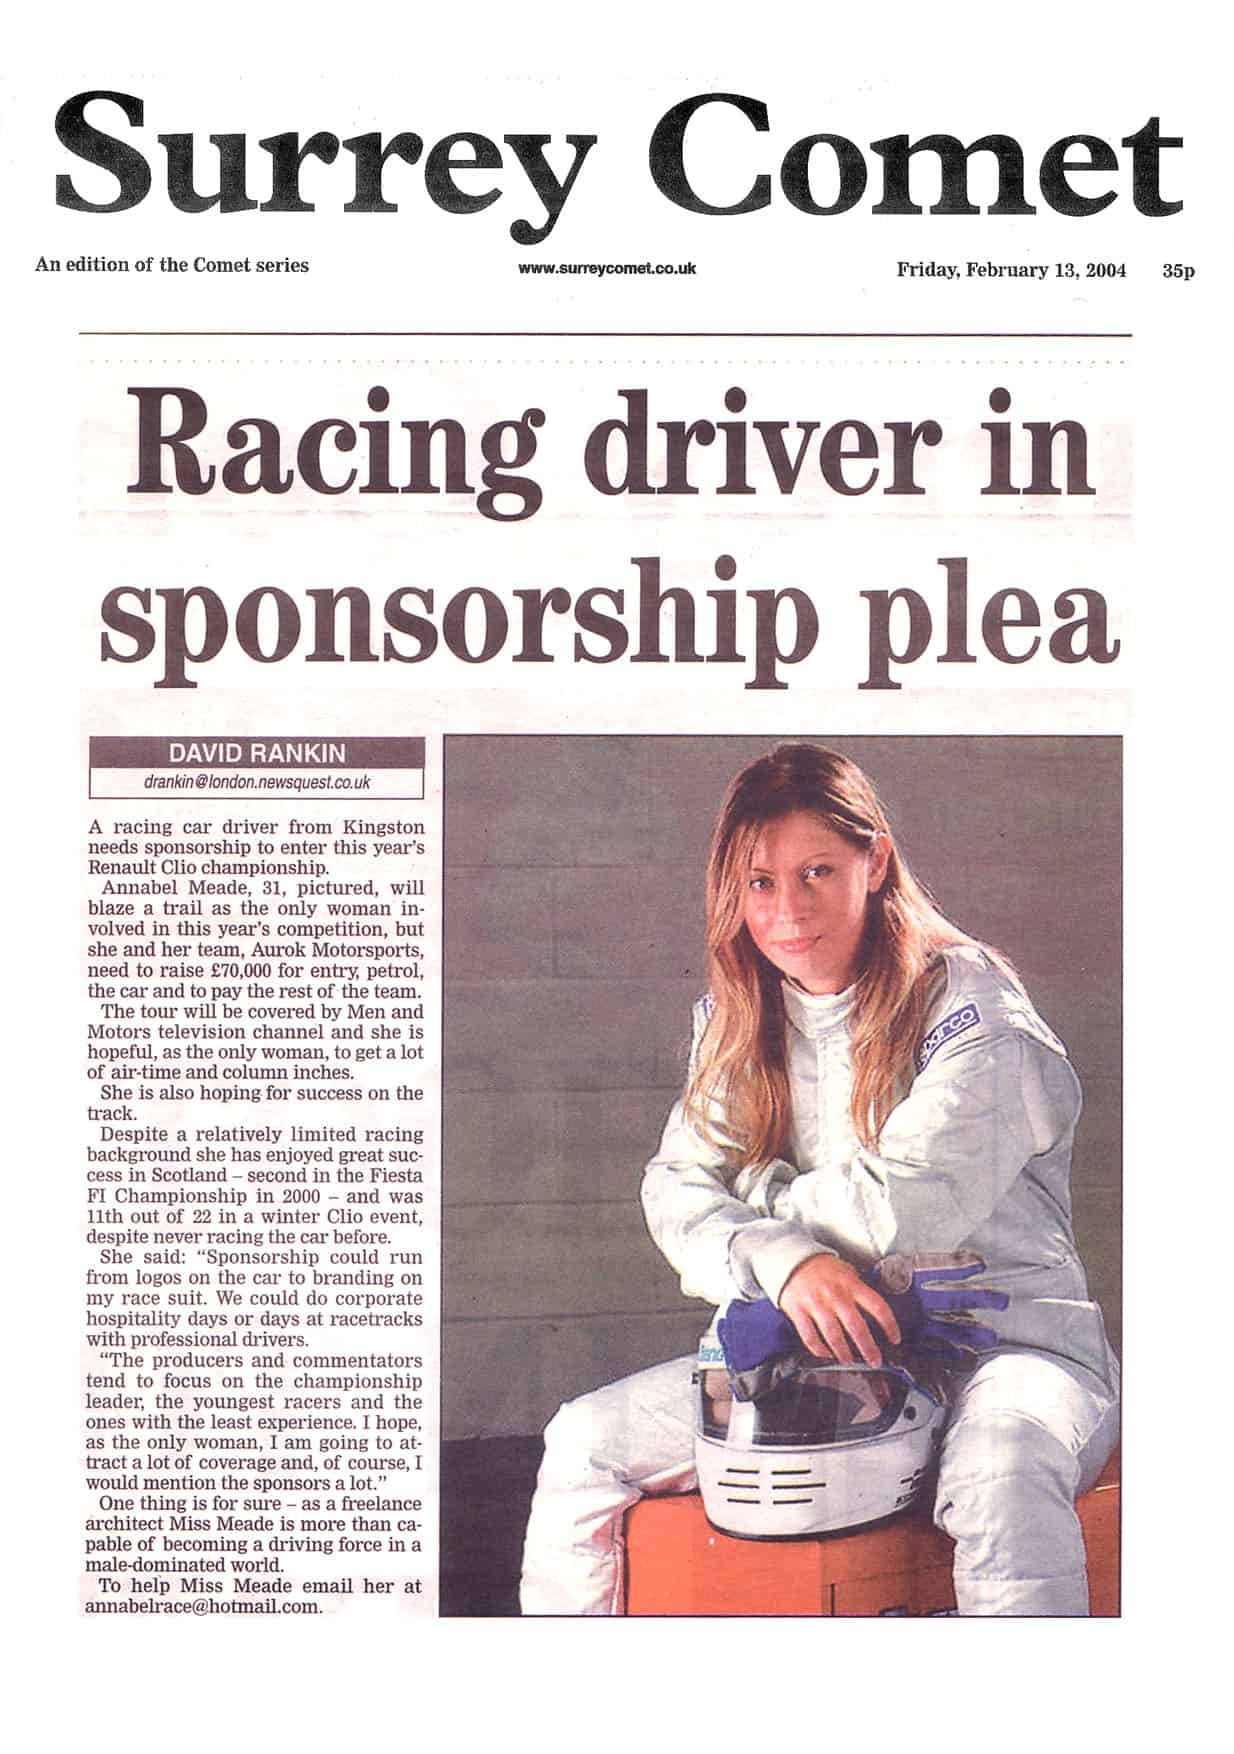 Annabel Meade Female Race Driver In The News